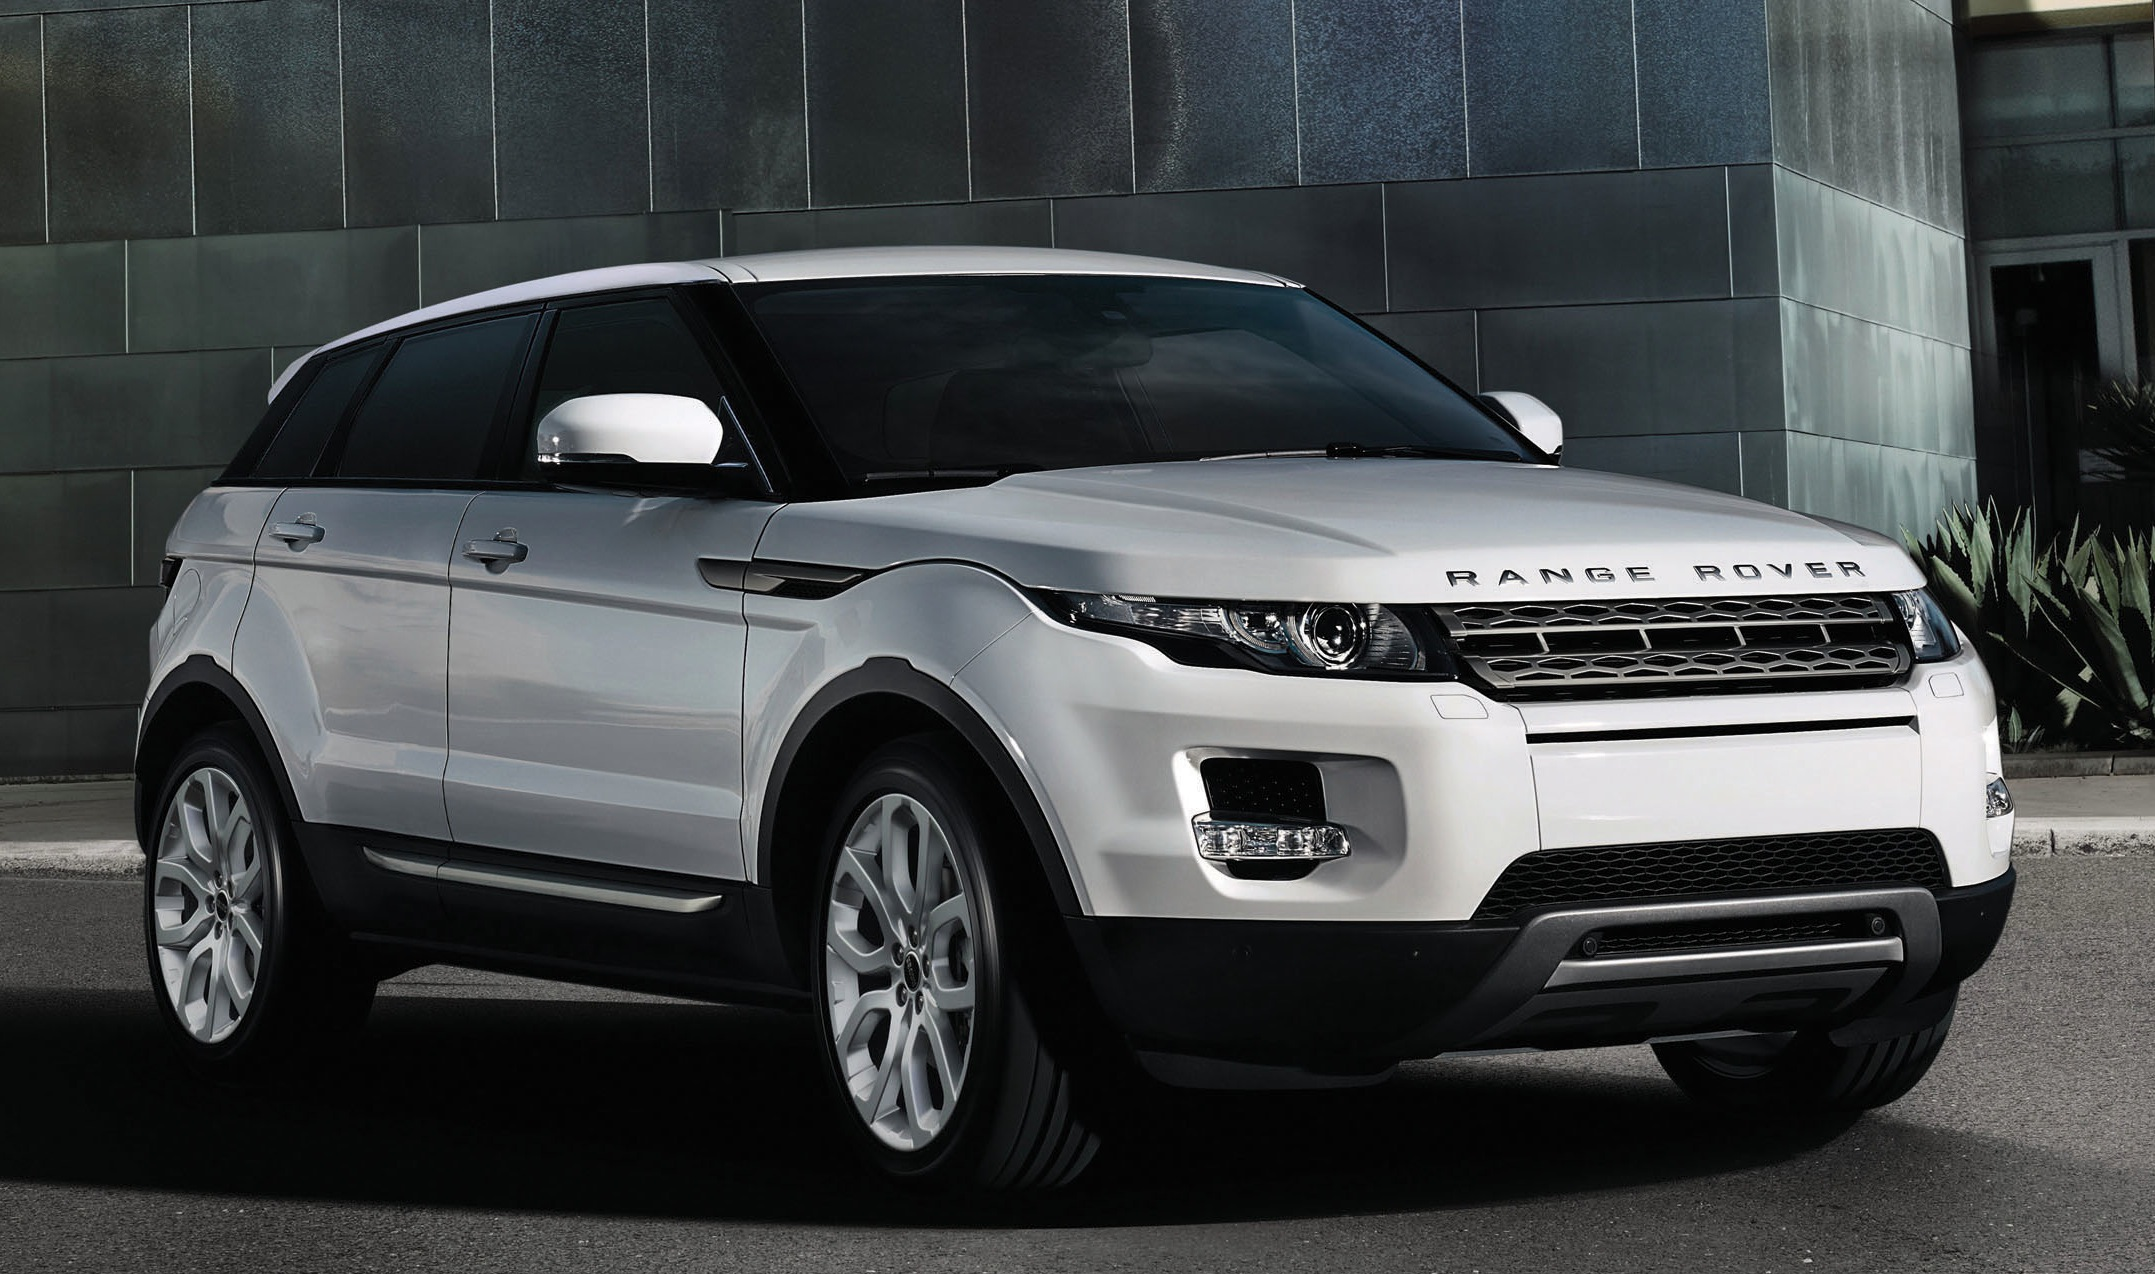 Dog In Land Rover Commercial 2014 | Dog Breeds Picture